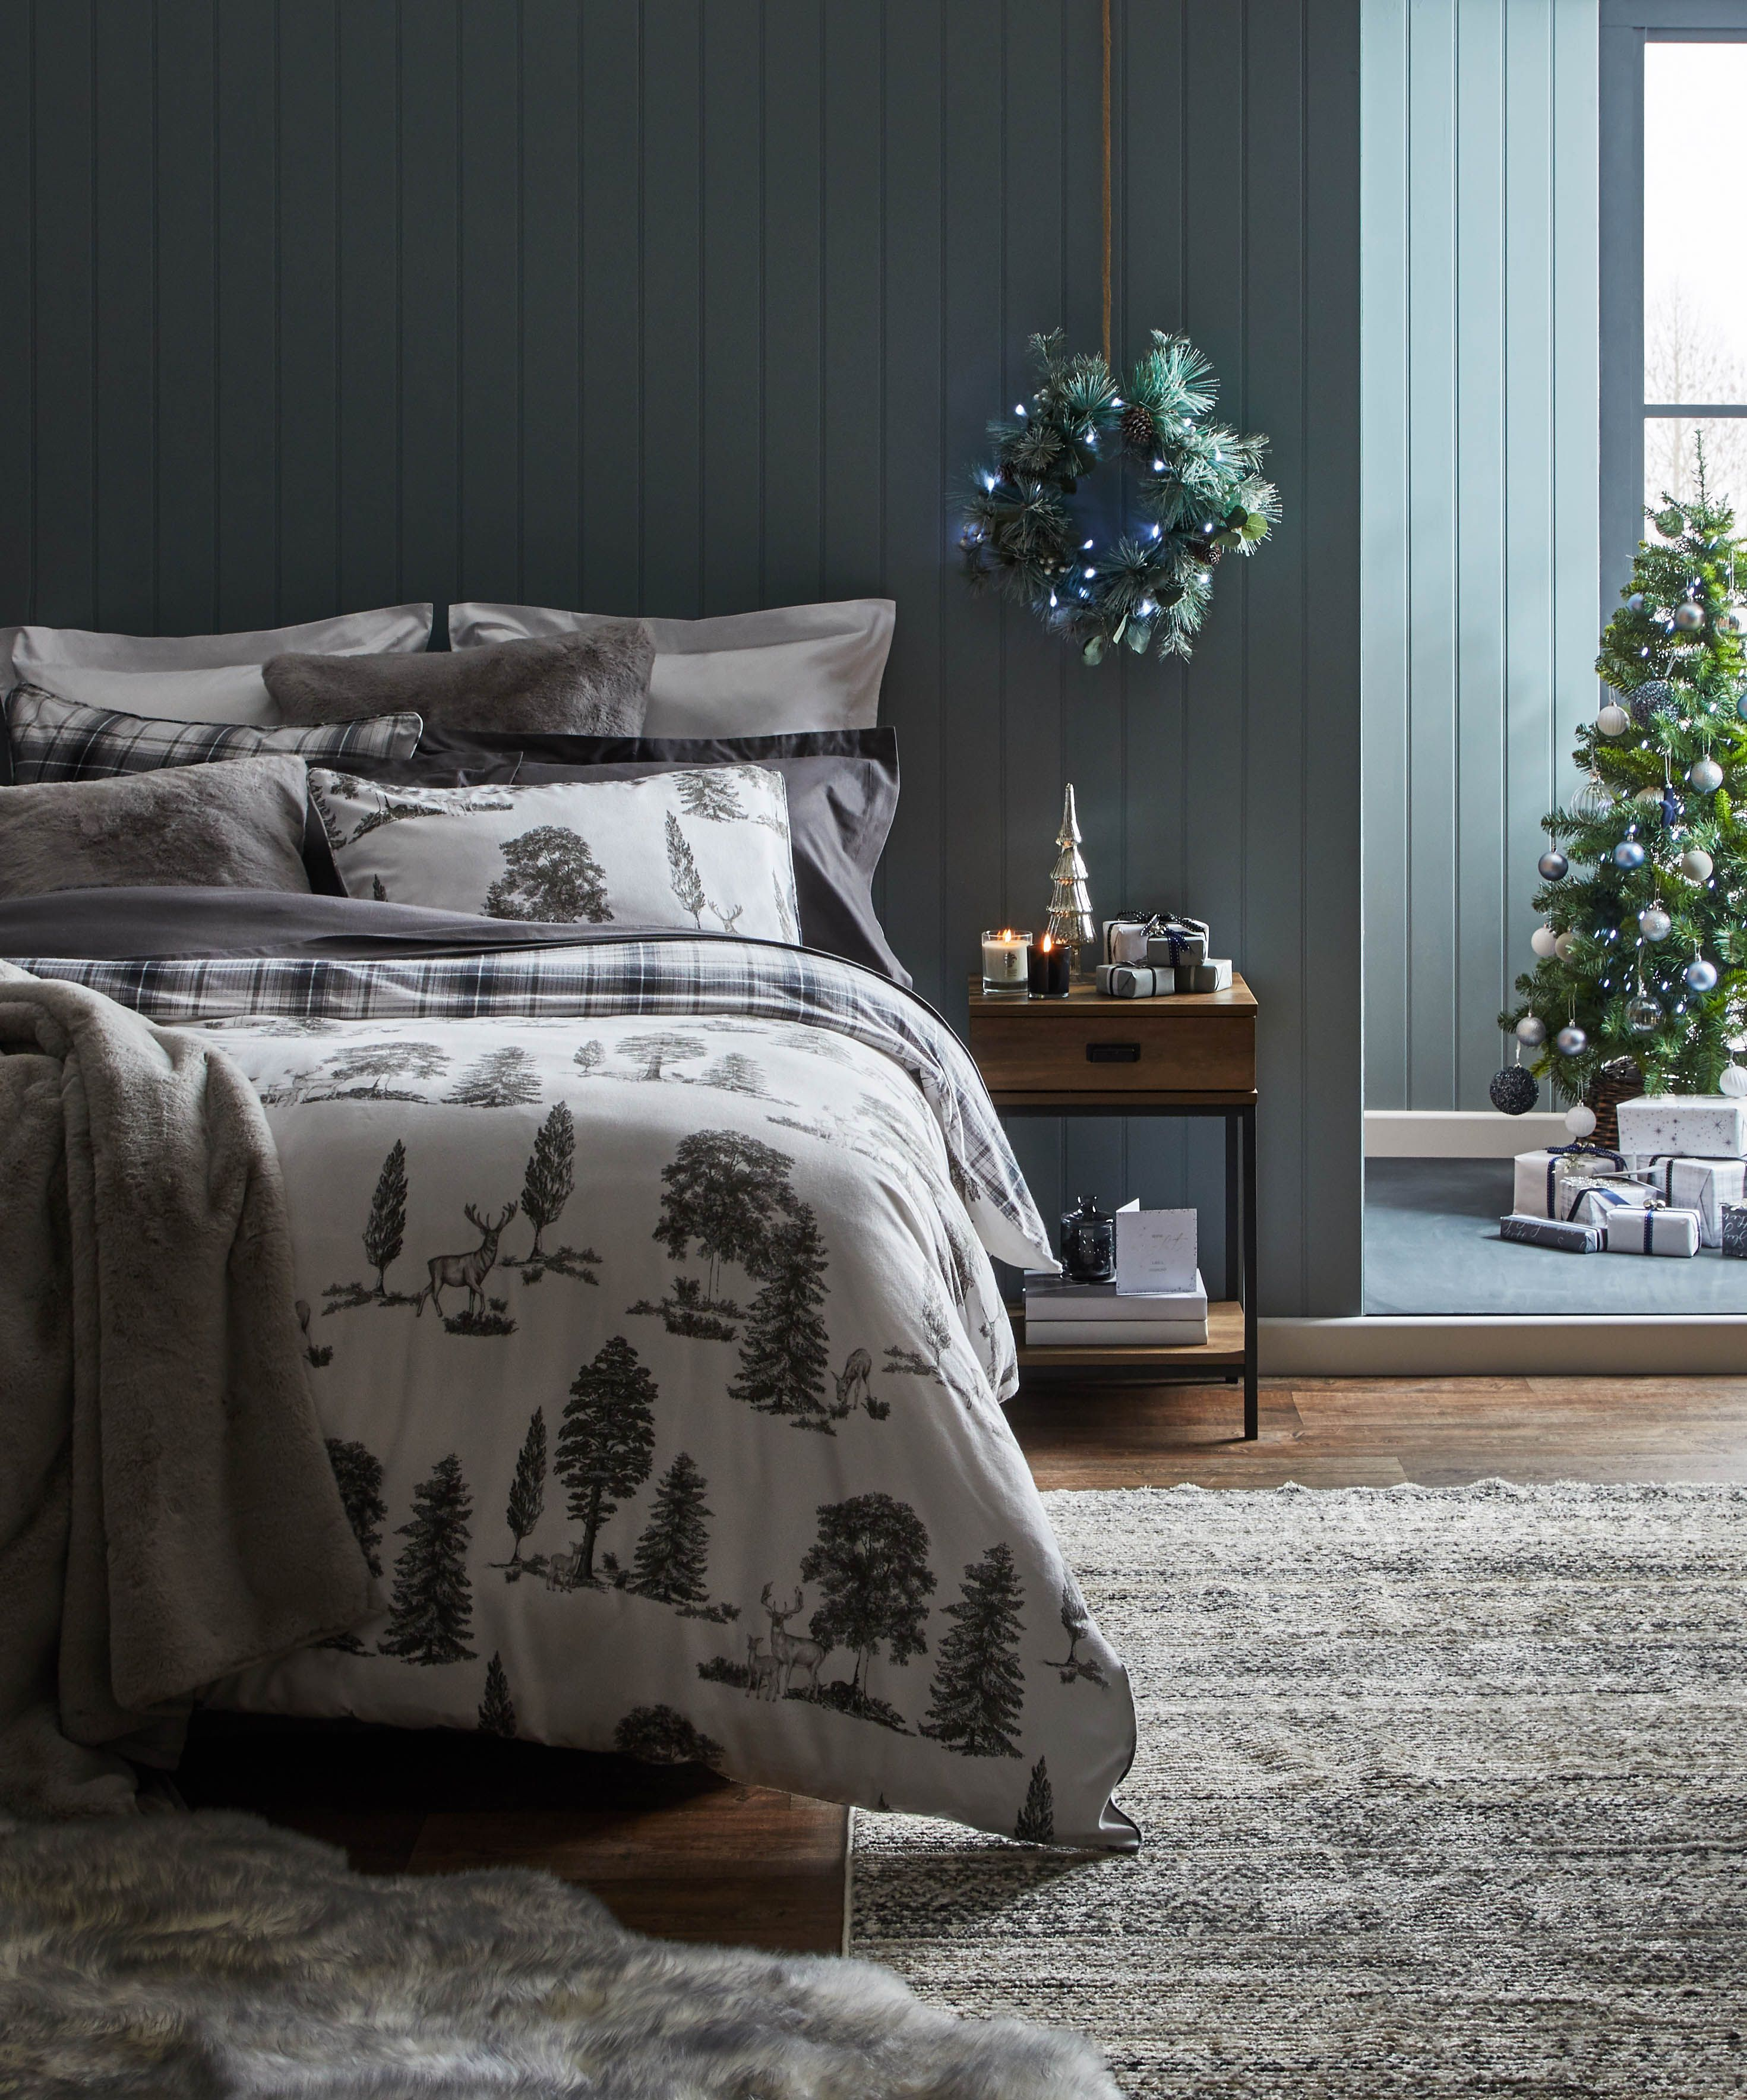 This year's top Christmas bedding trends, according to Instagram